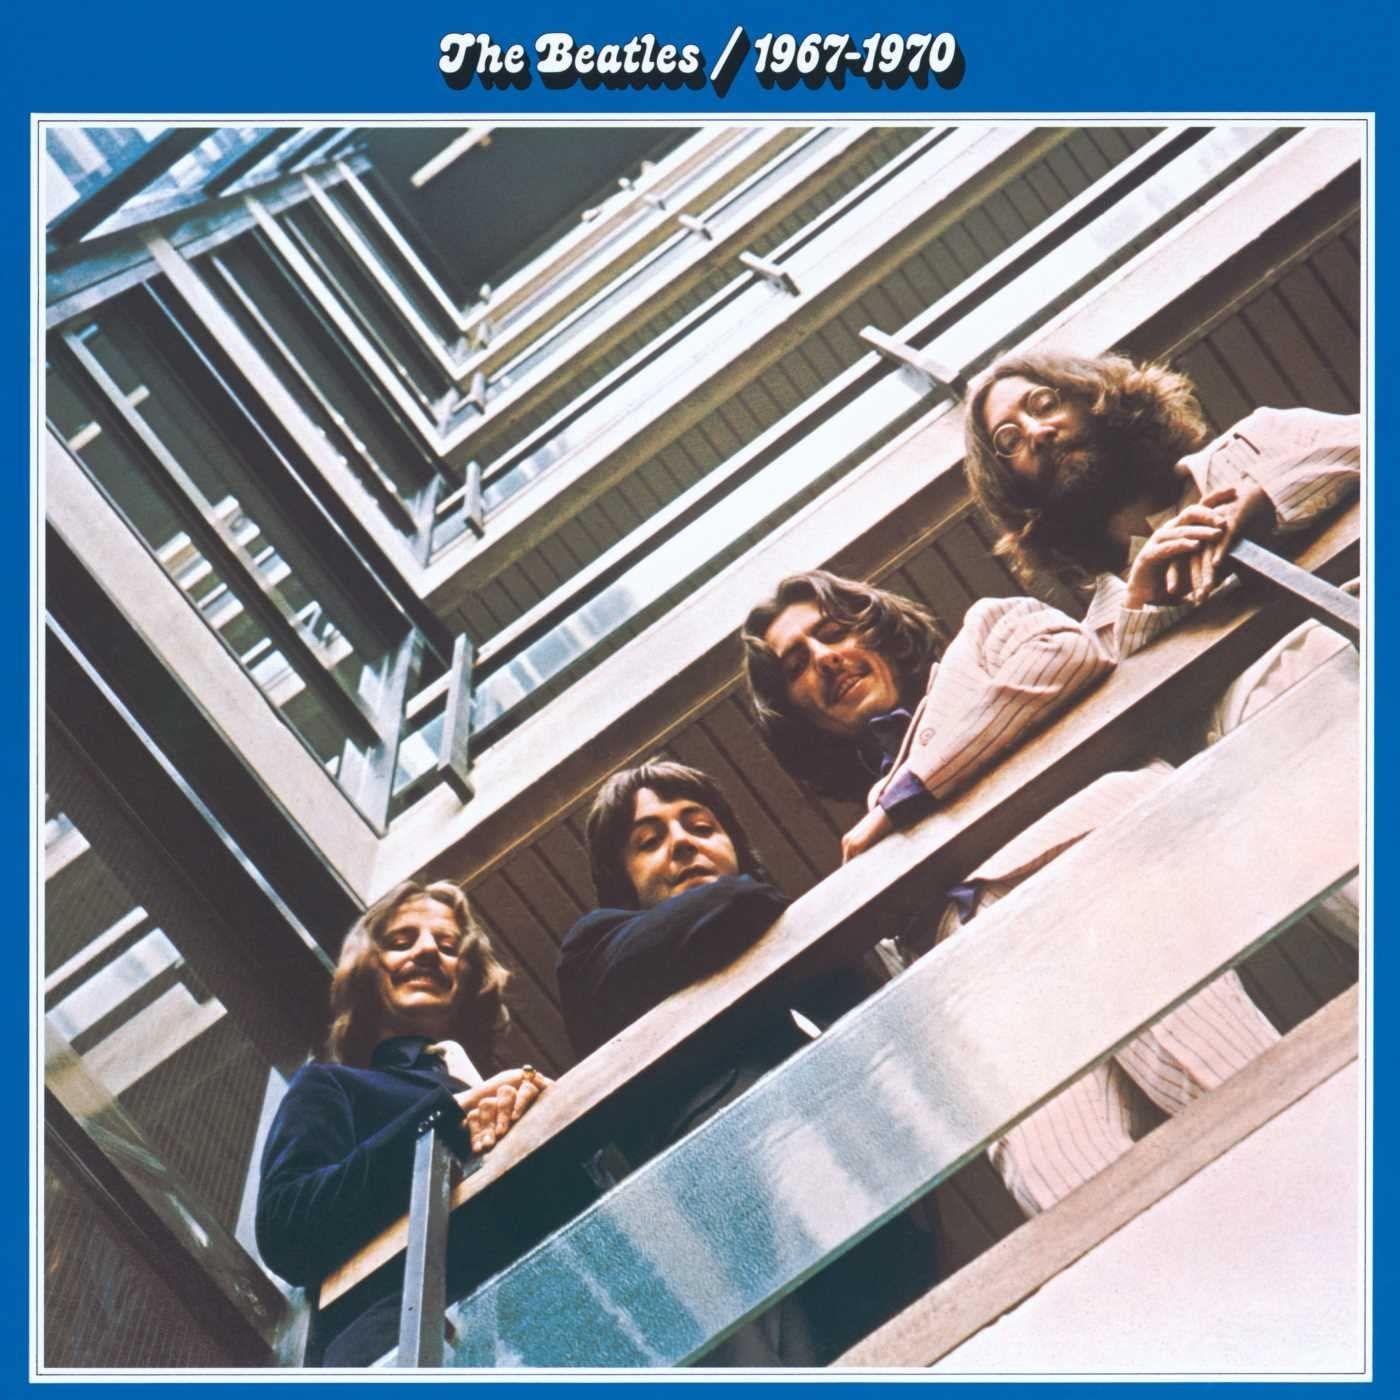 1967-1970 [VINYL]: Amazon.co.uk: Music